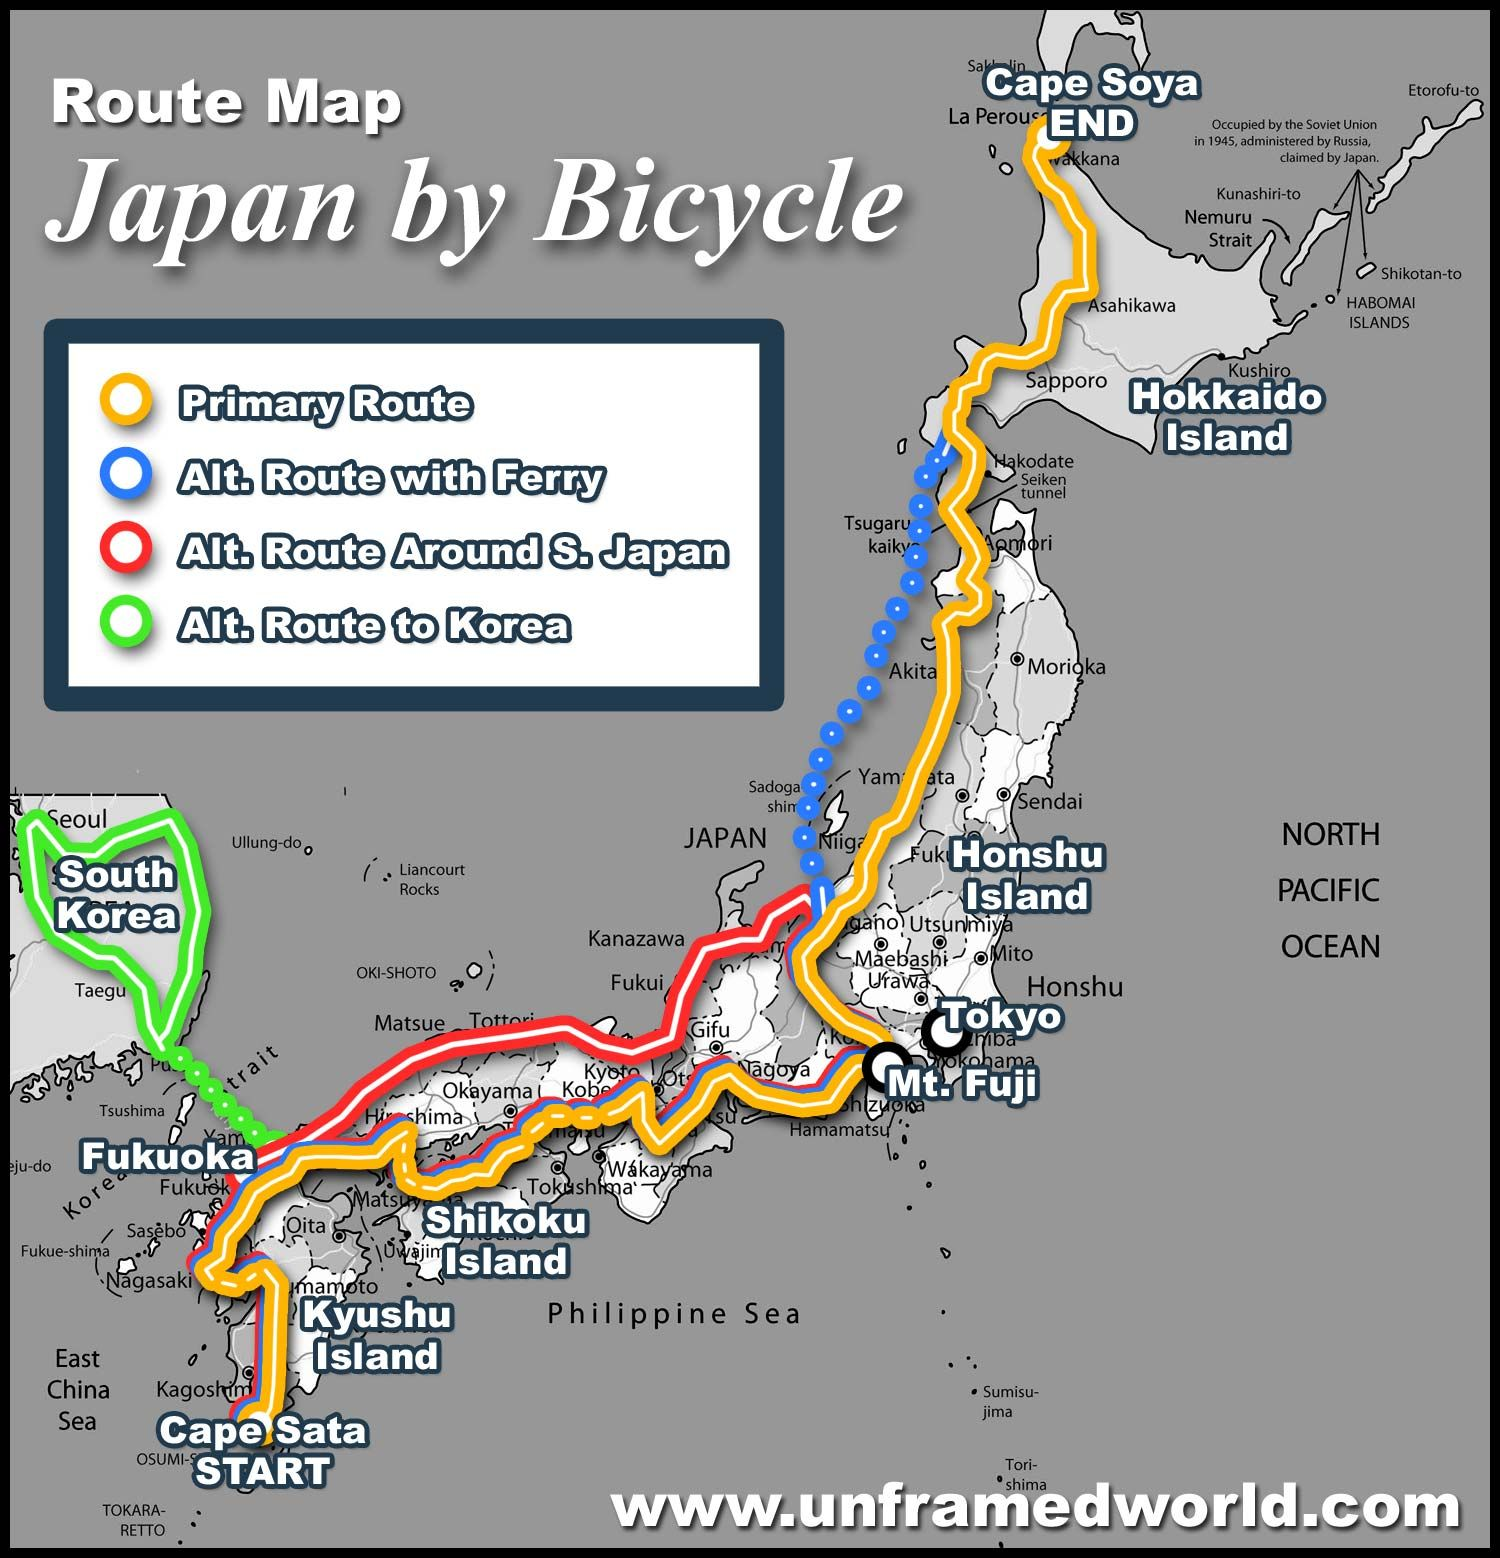 Travel Route Maps Japan By Bicycle Route Map Bike Tour Japan - Japan map road